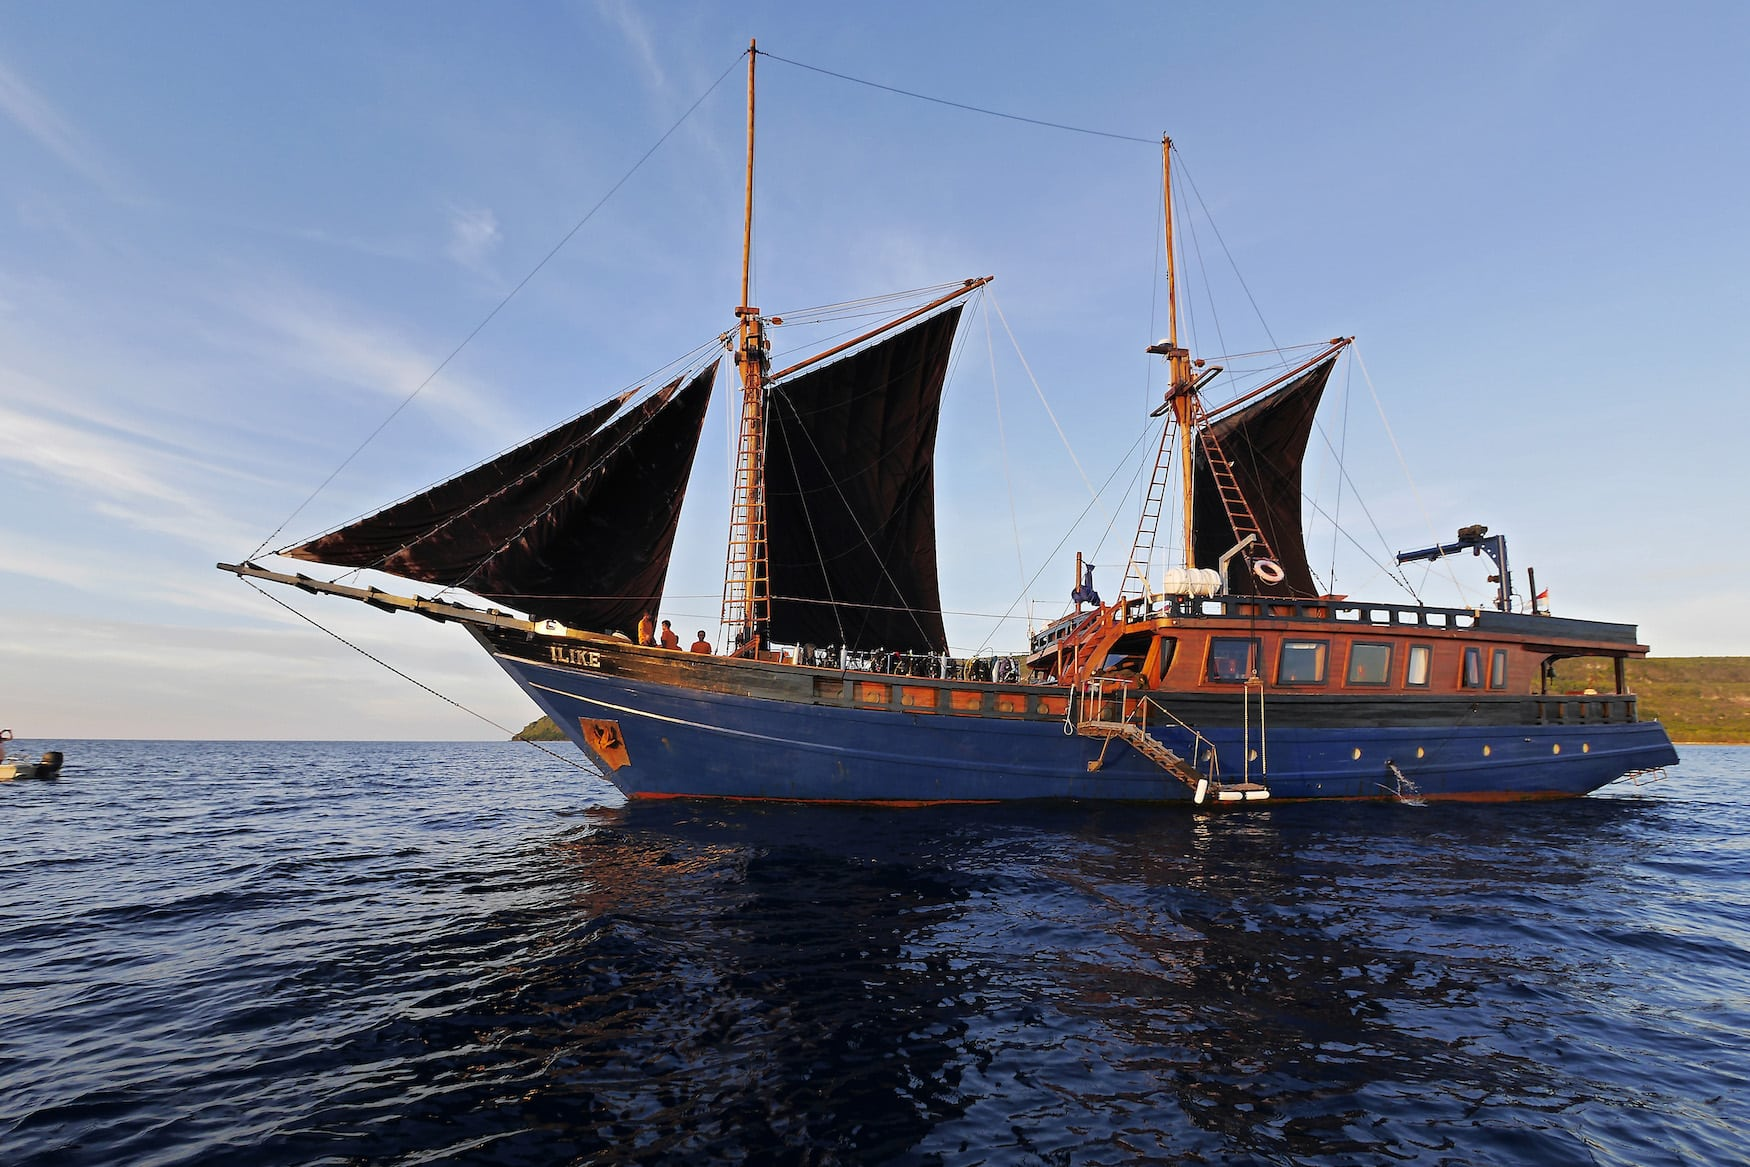 Tauchschiff unterwegs in Indonesien